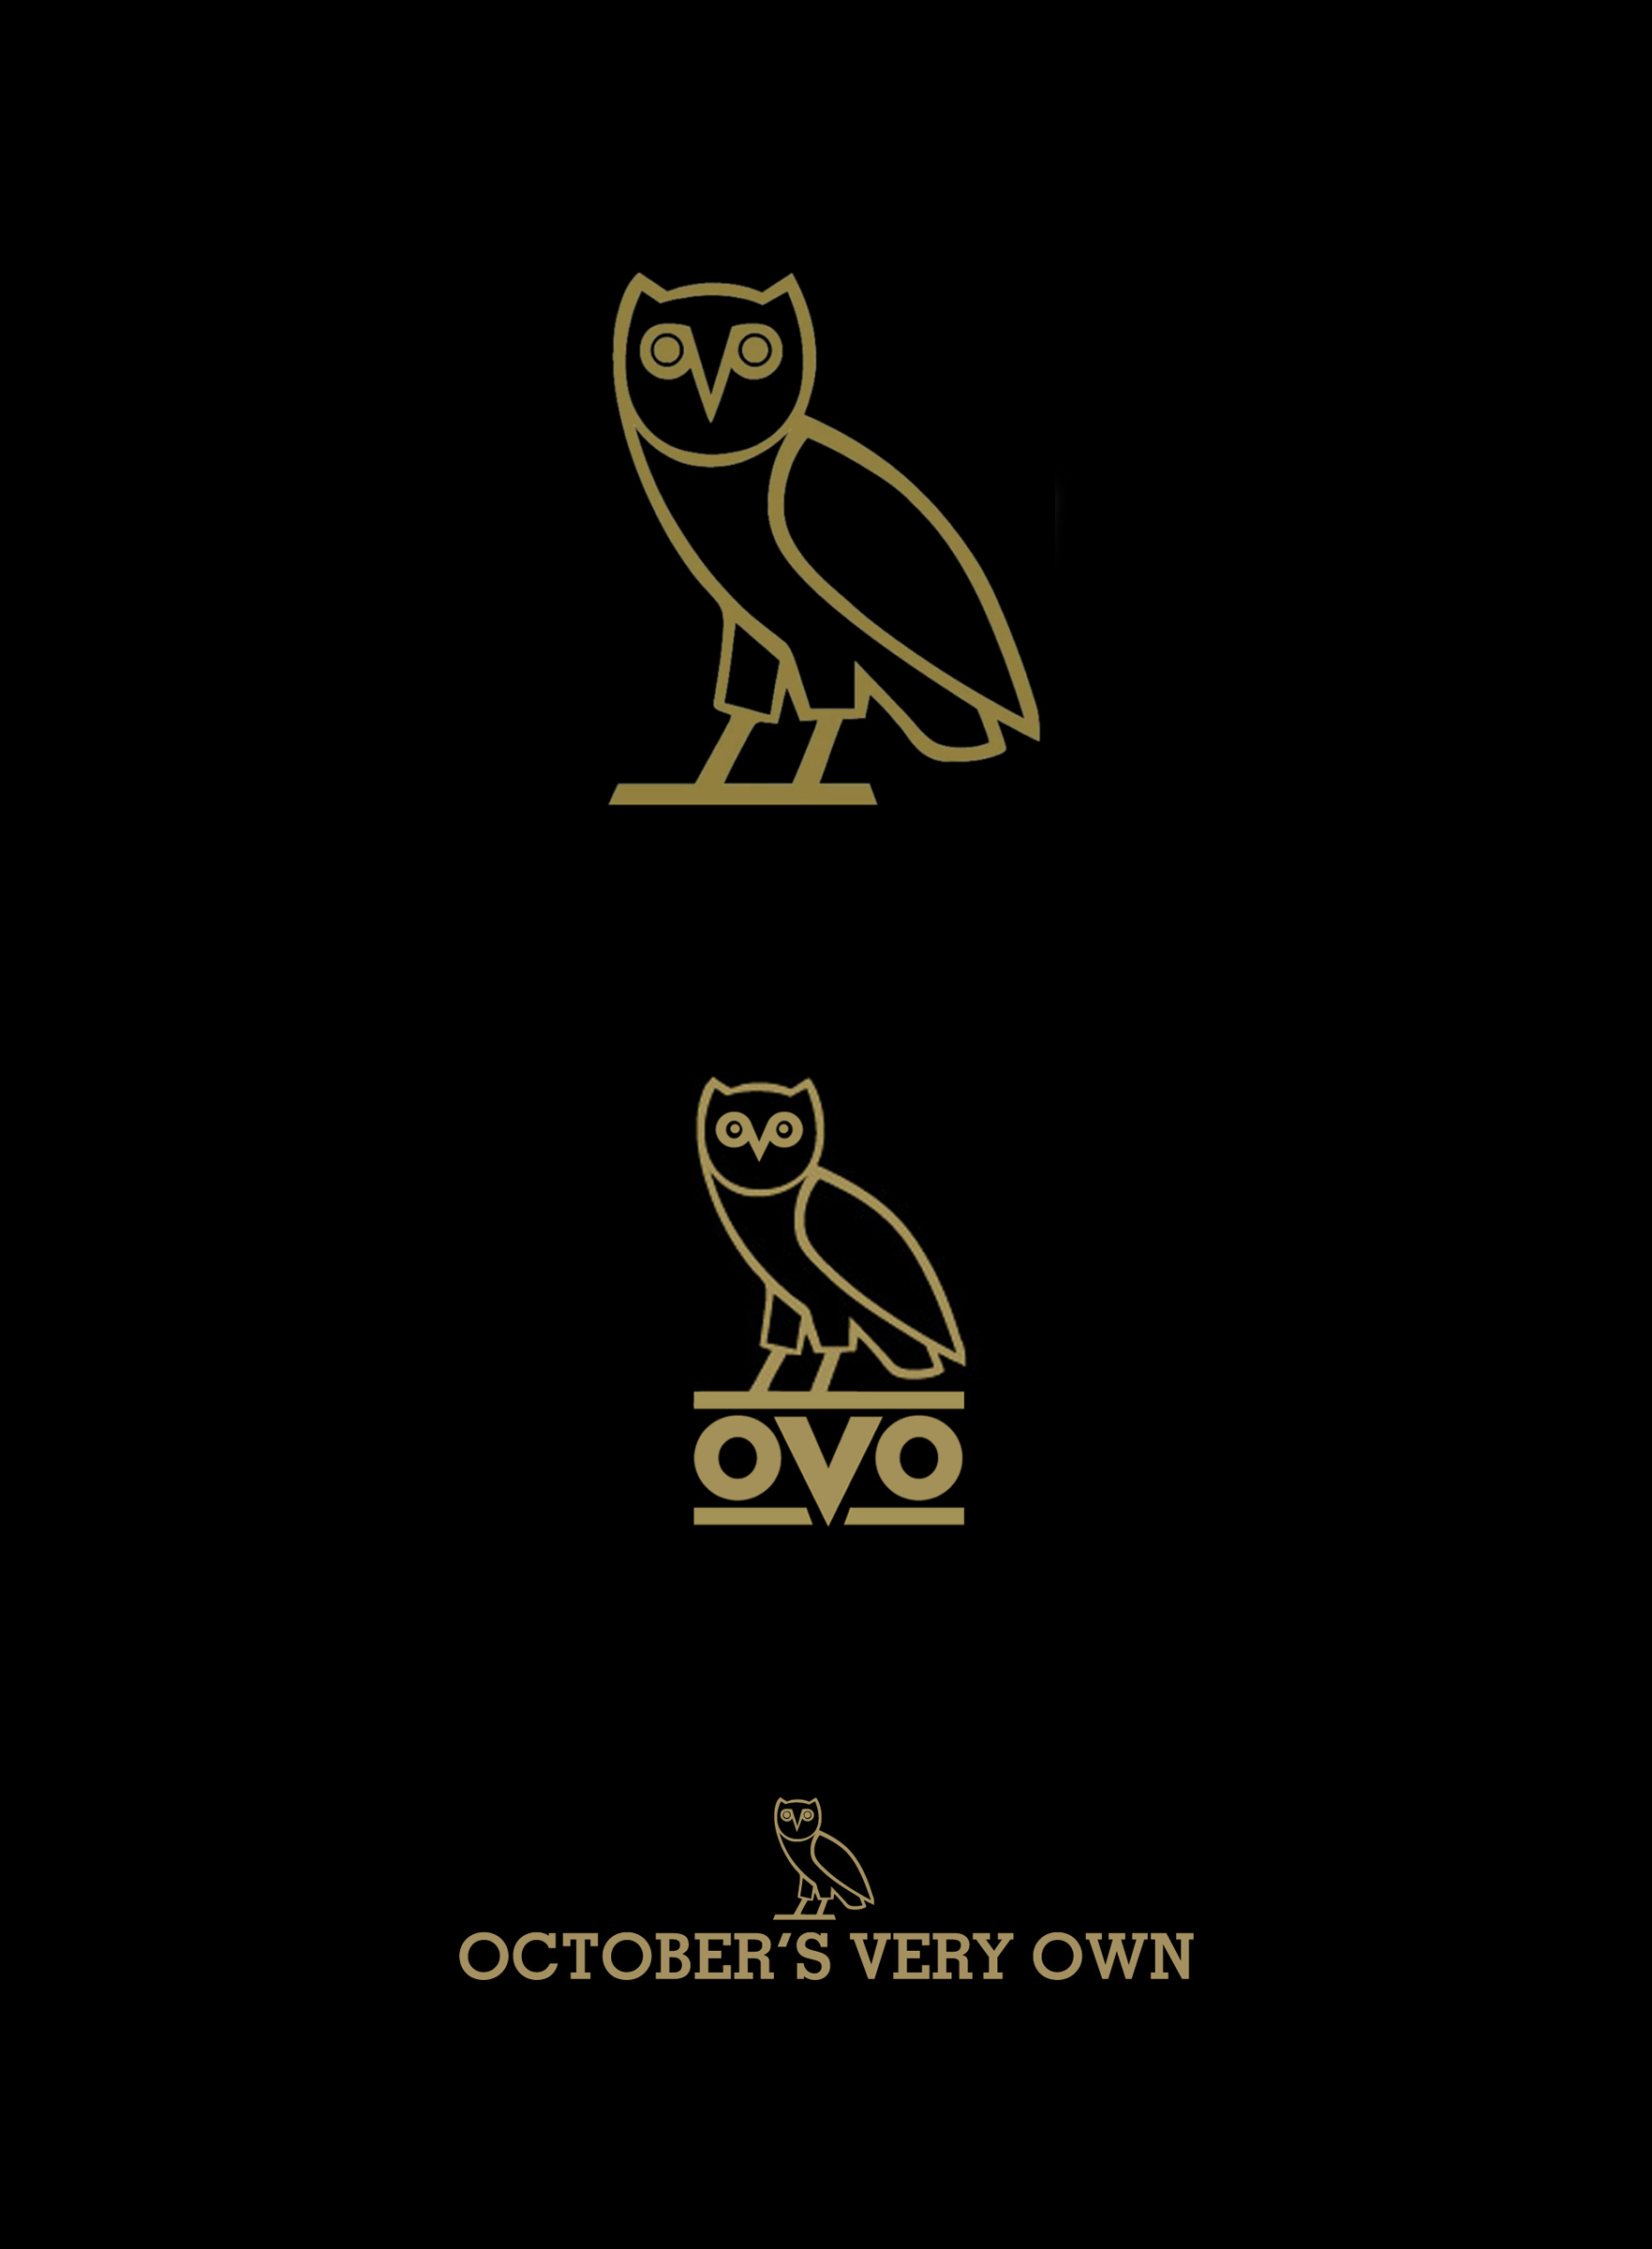 Ovo Logo And Wordmark For Drakes Made In Canada Clothing Line